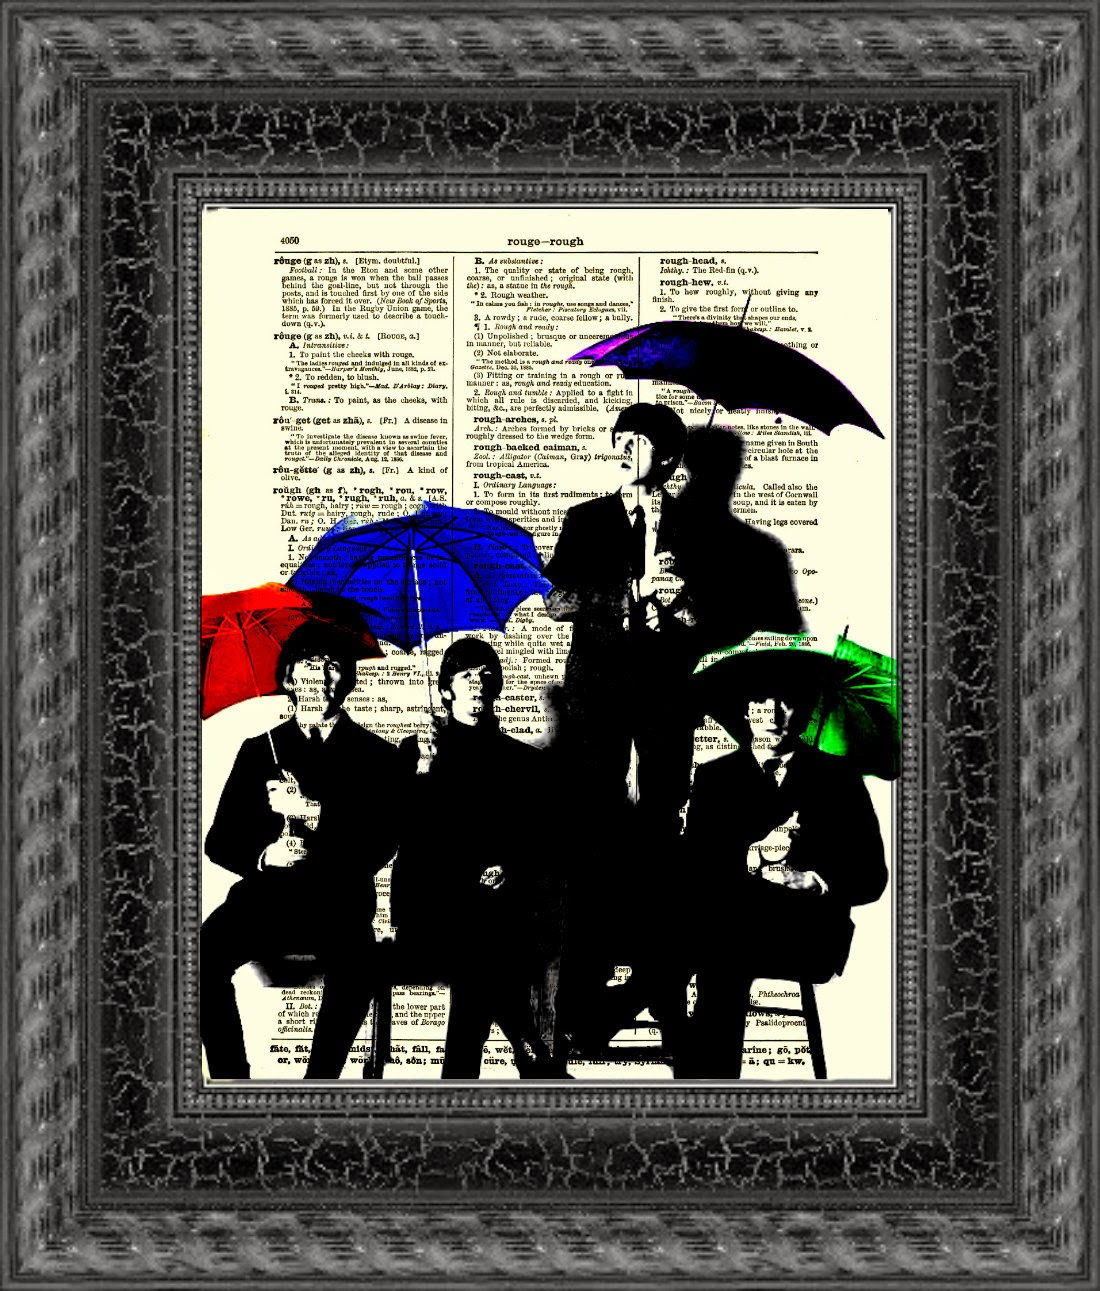 15-Beatles-Silhouettes-Belle-Old-Books-and-Dictionaries-in-Re-Imagination-Prints-www-designstack-co